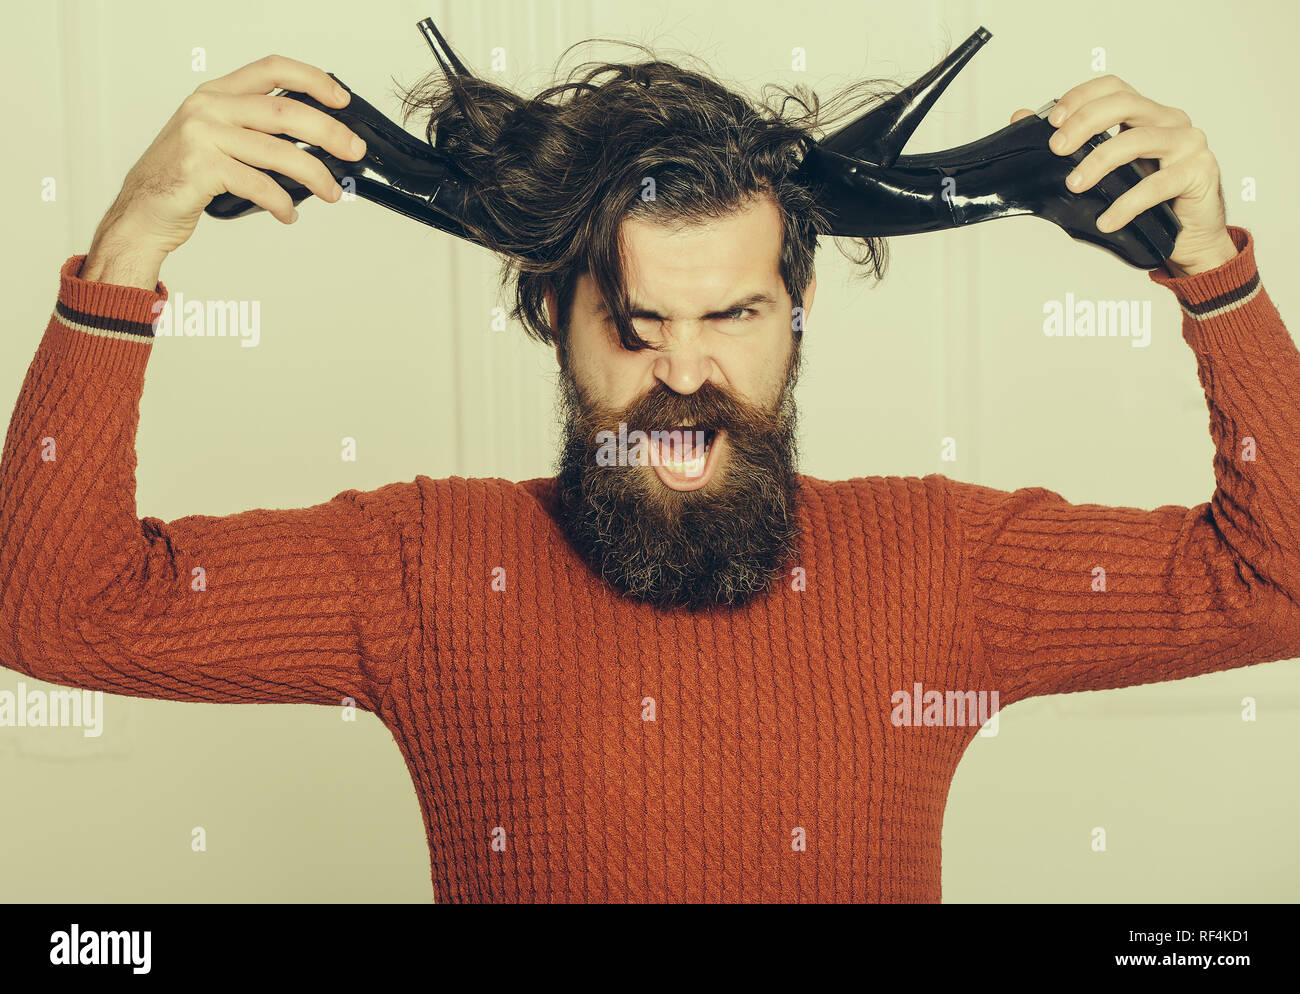 angry bearded man with shoes - Stock Image